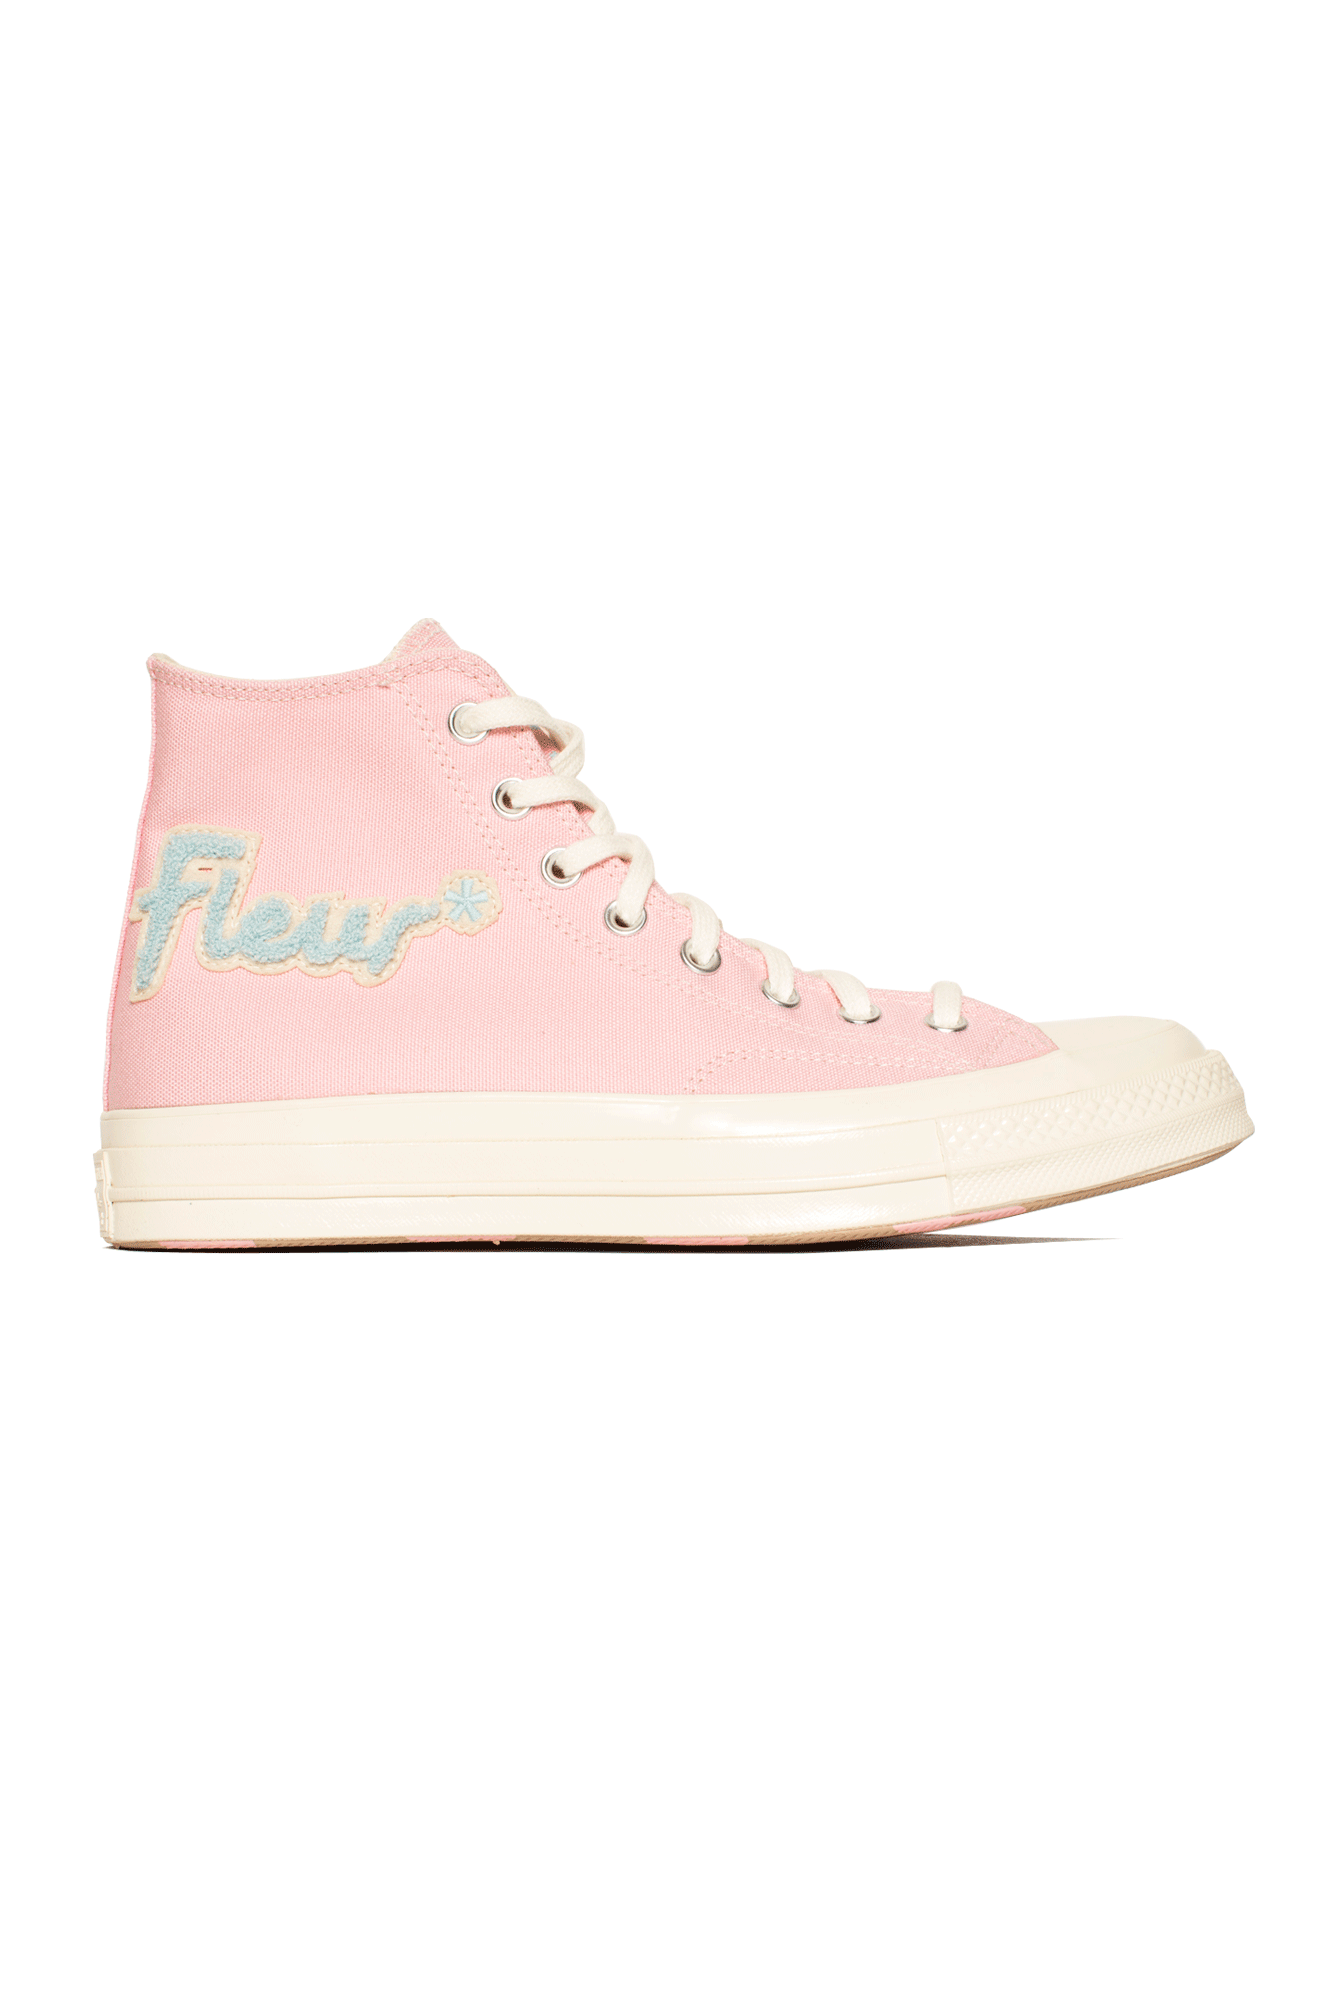 Converse Sneakers Chuck 70 HI X Golf Le Fleur Rosa 167478C#000#669#4 - One Block Down